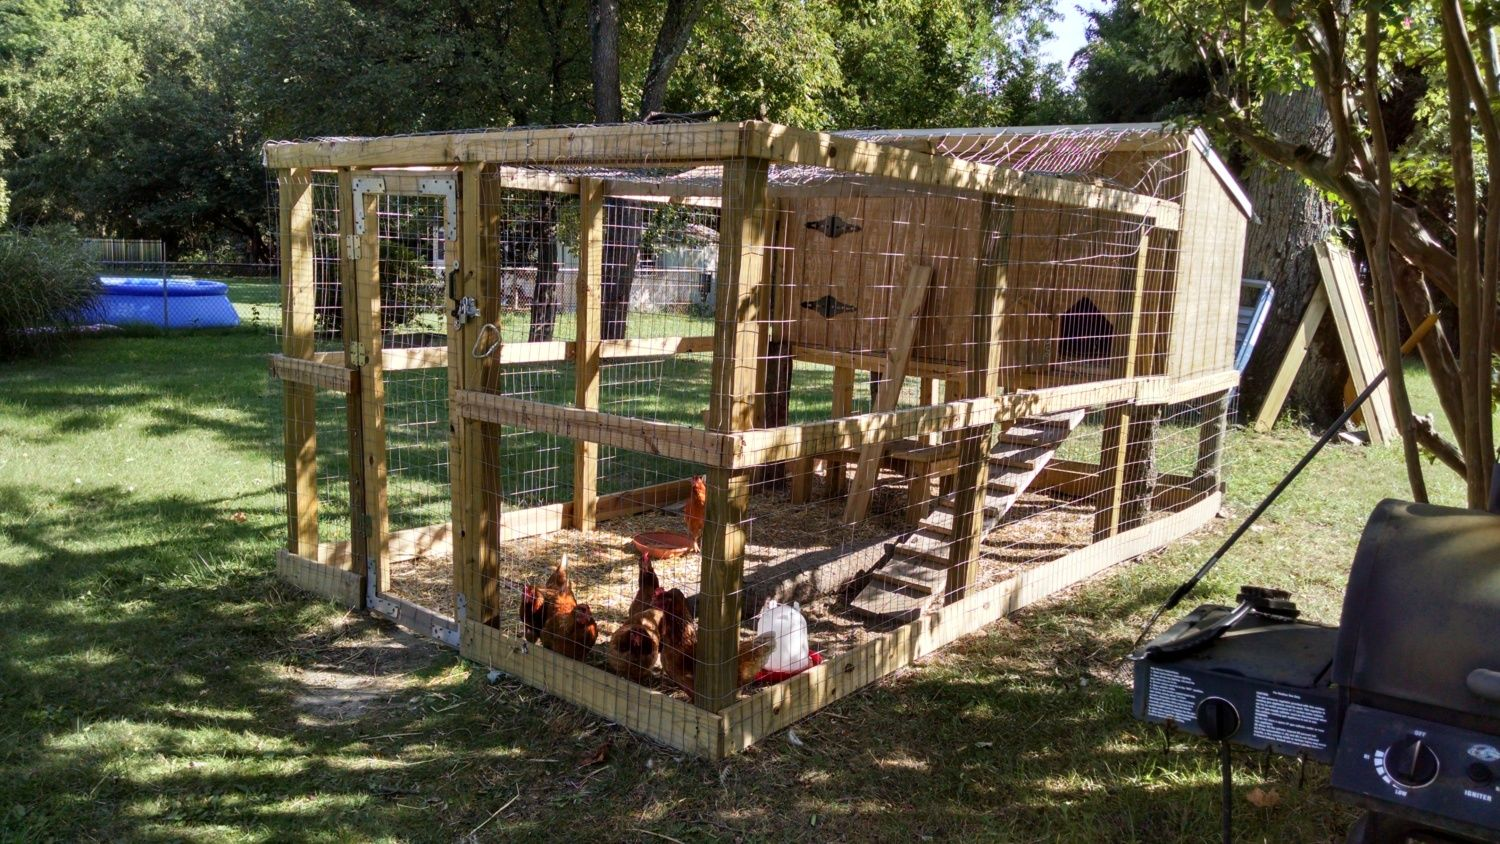 Backyard Chickens At Night : Chickens stopped putting themselves to bed, awake at night